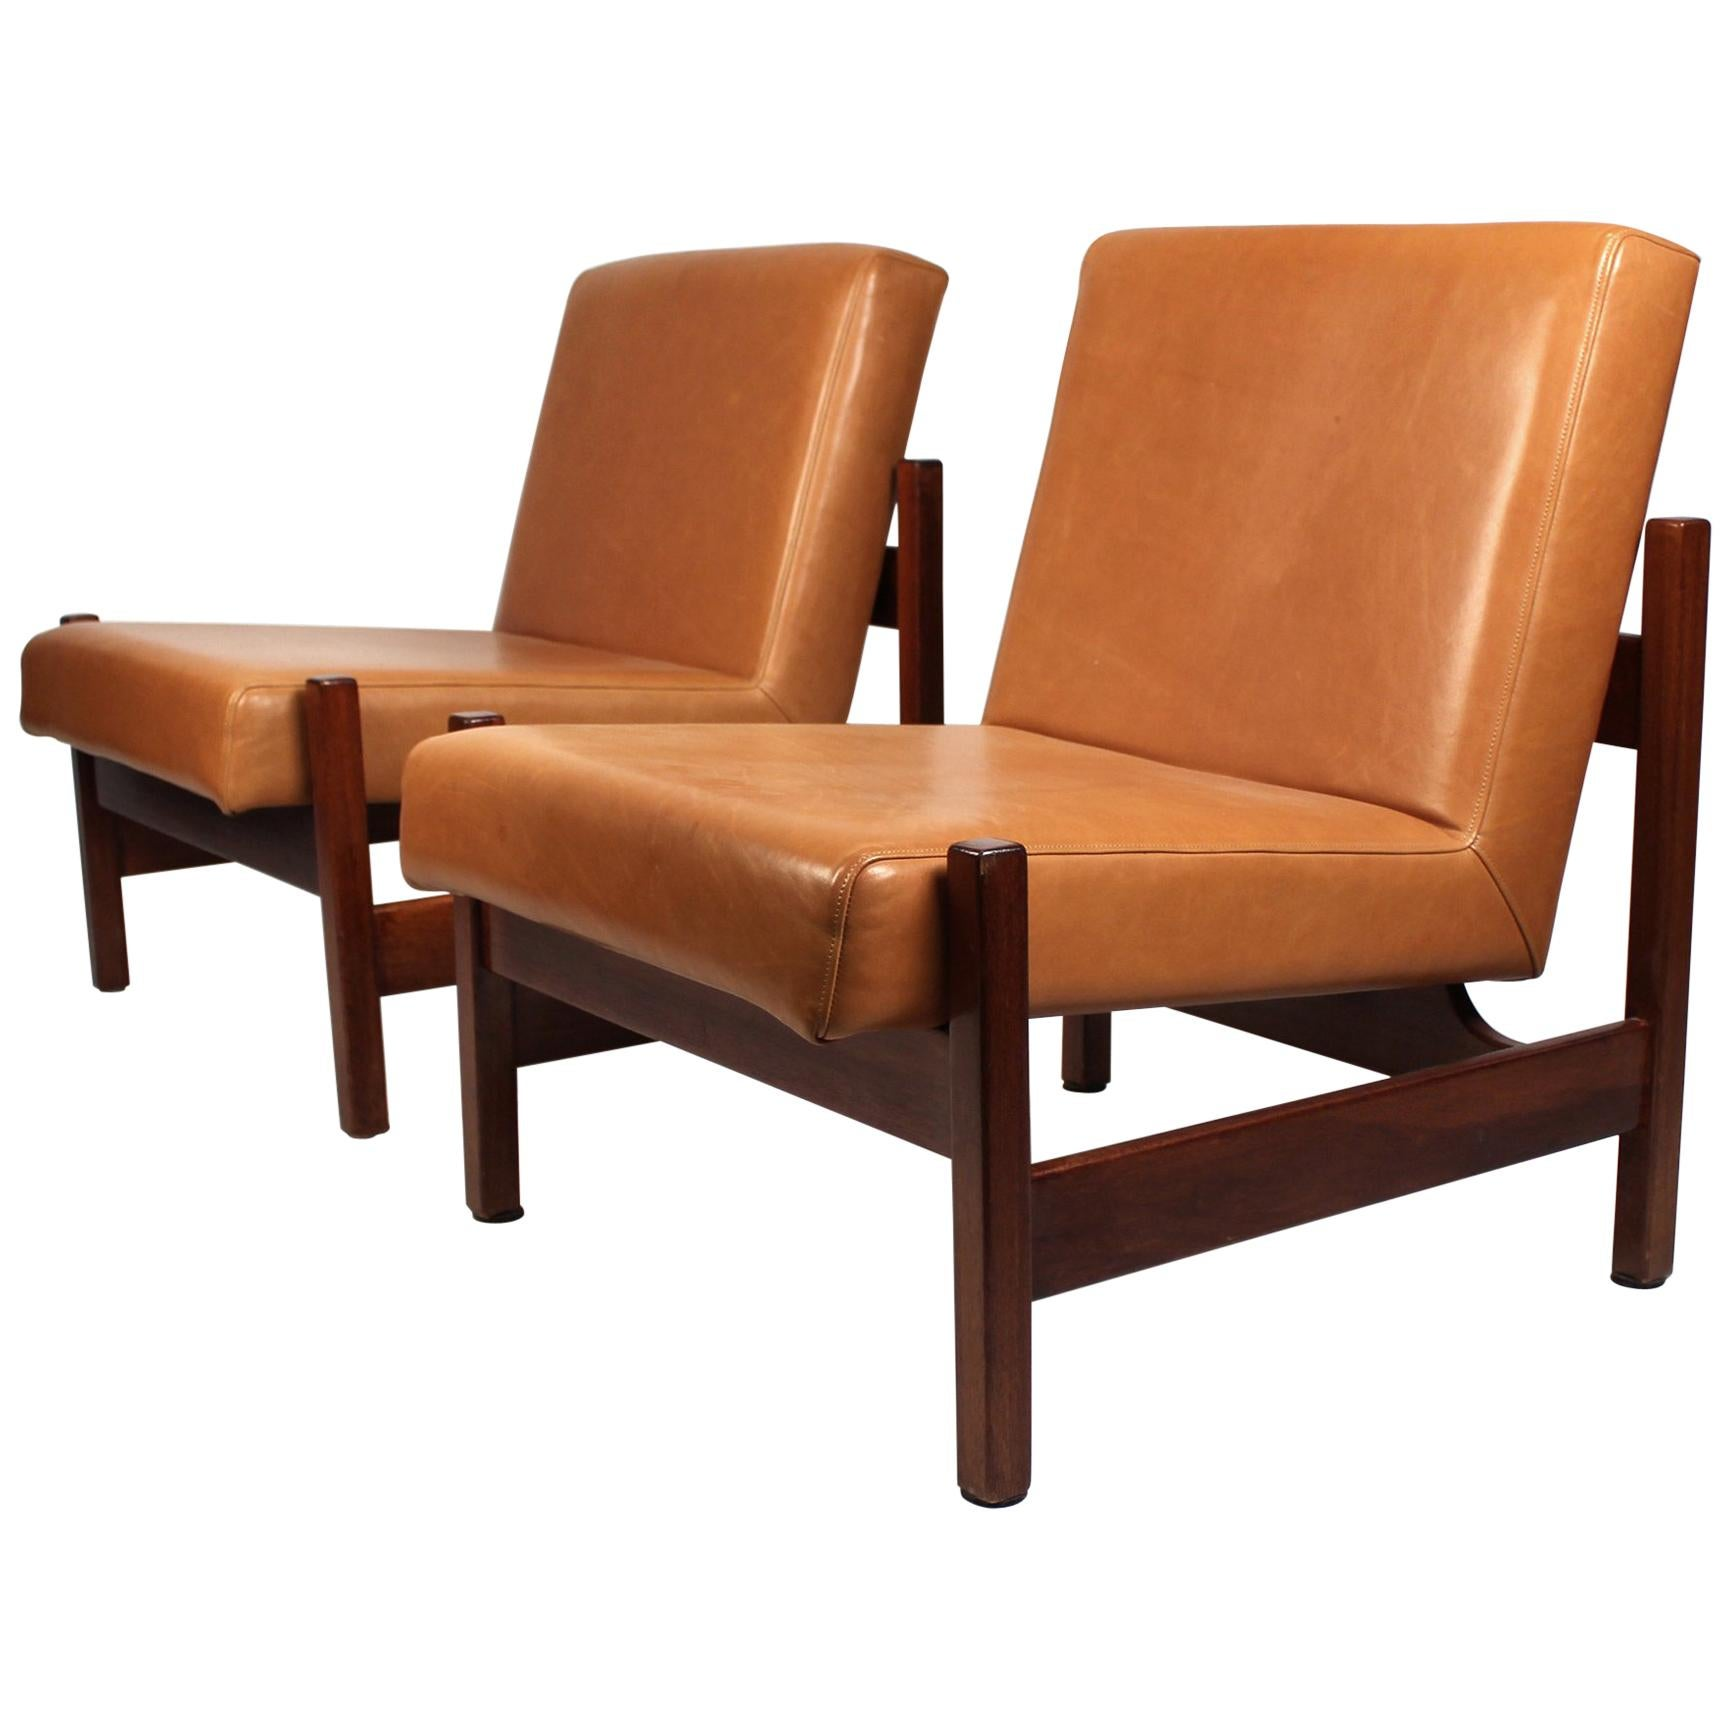 Joaquim Tenreiro Style Peroba Lounge Chairs in leather for Knoll & Forma Brazil